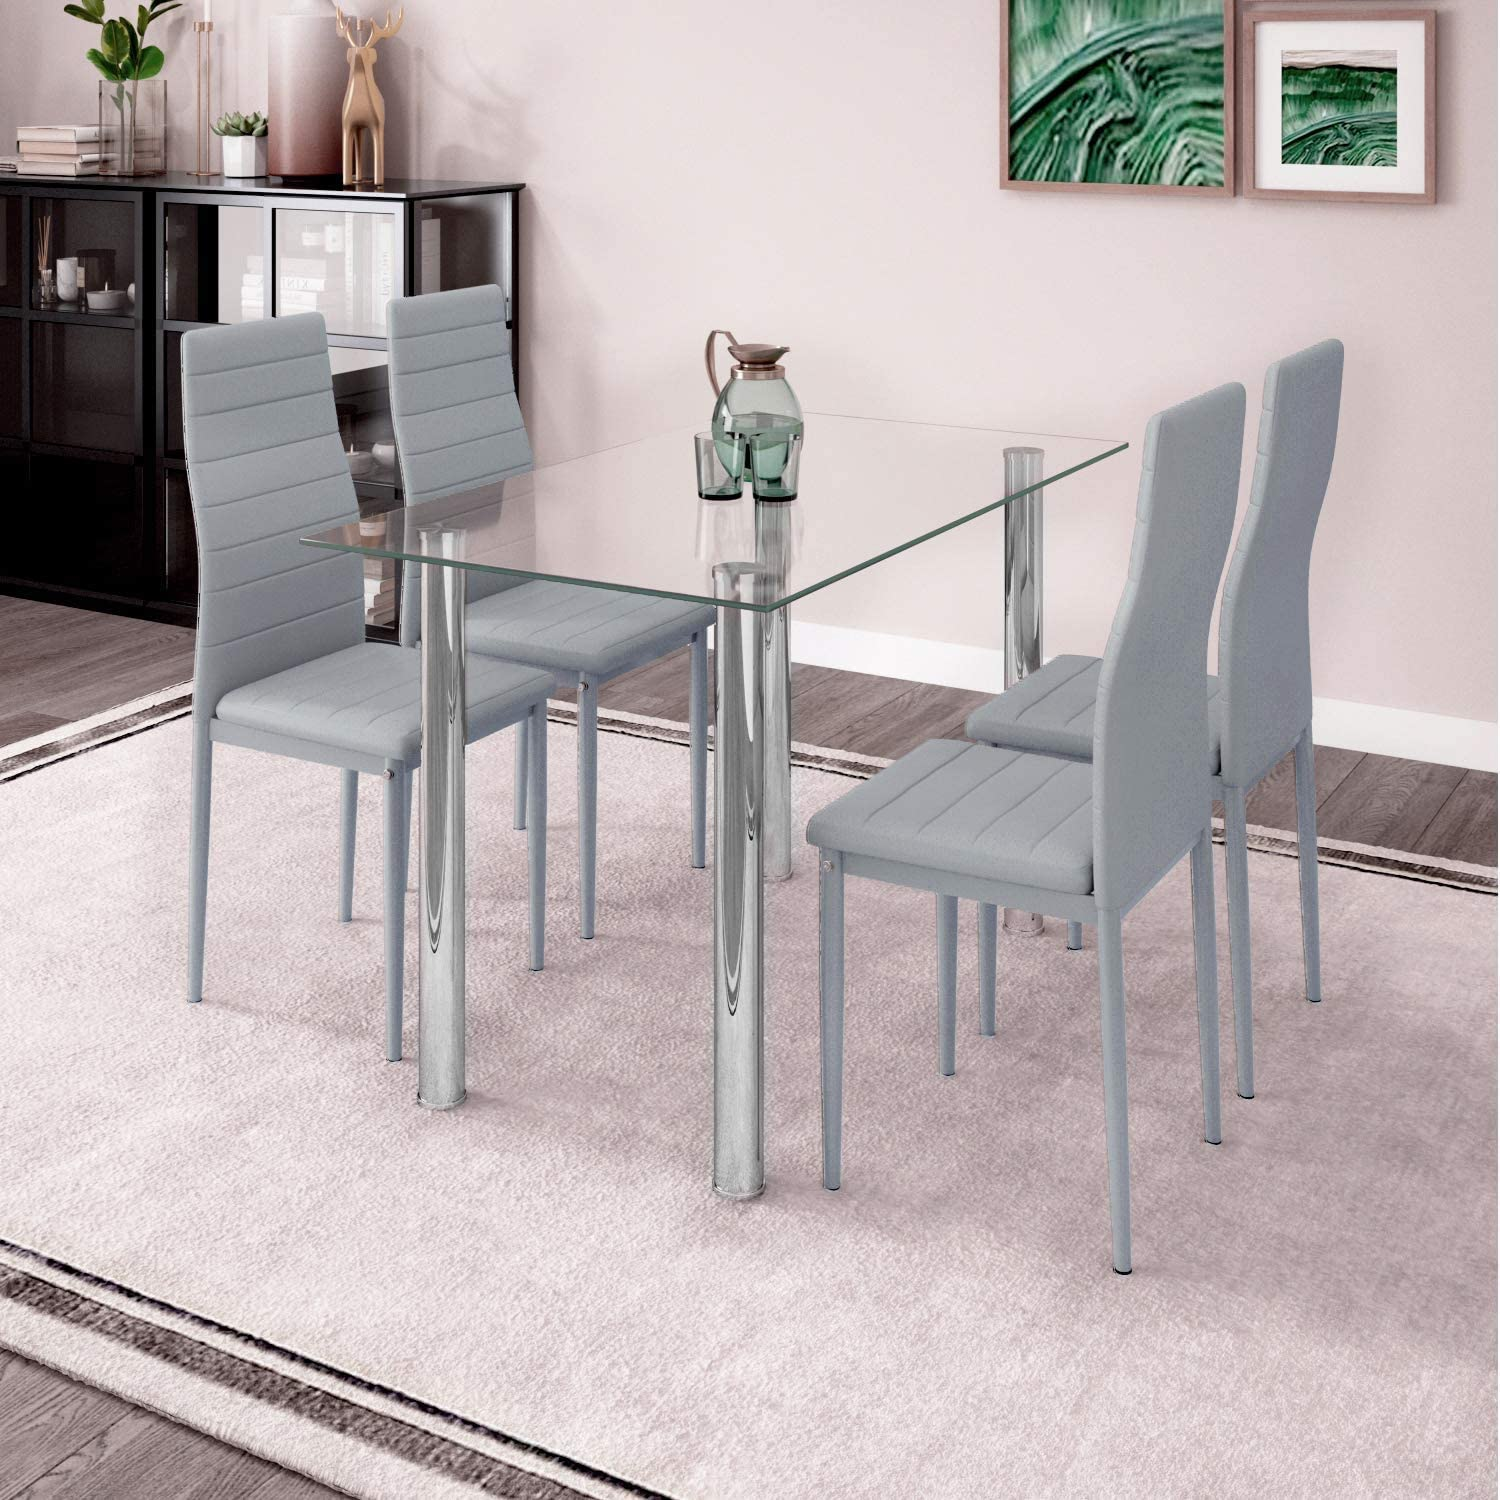 Modern Glass Dining Room Table and Chairs Set of 9 for Small Space, 9pcs  Kitchen Clear Glass Table Set with 9 Grey Leather Chairs for Dinette ...